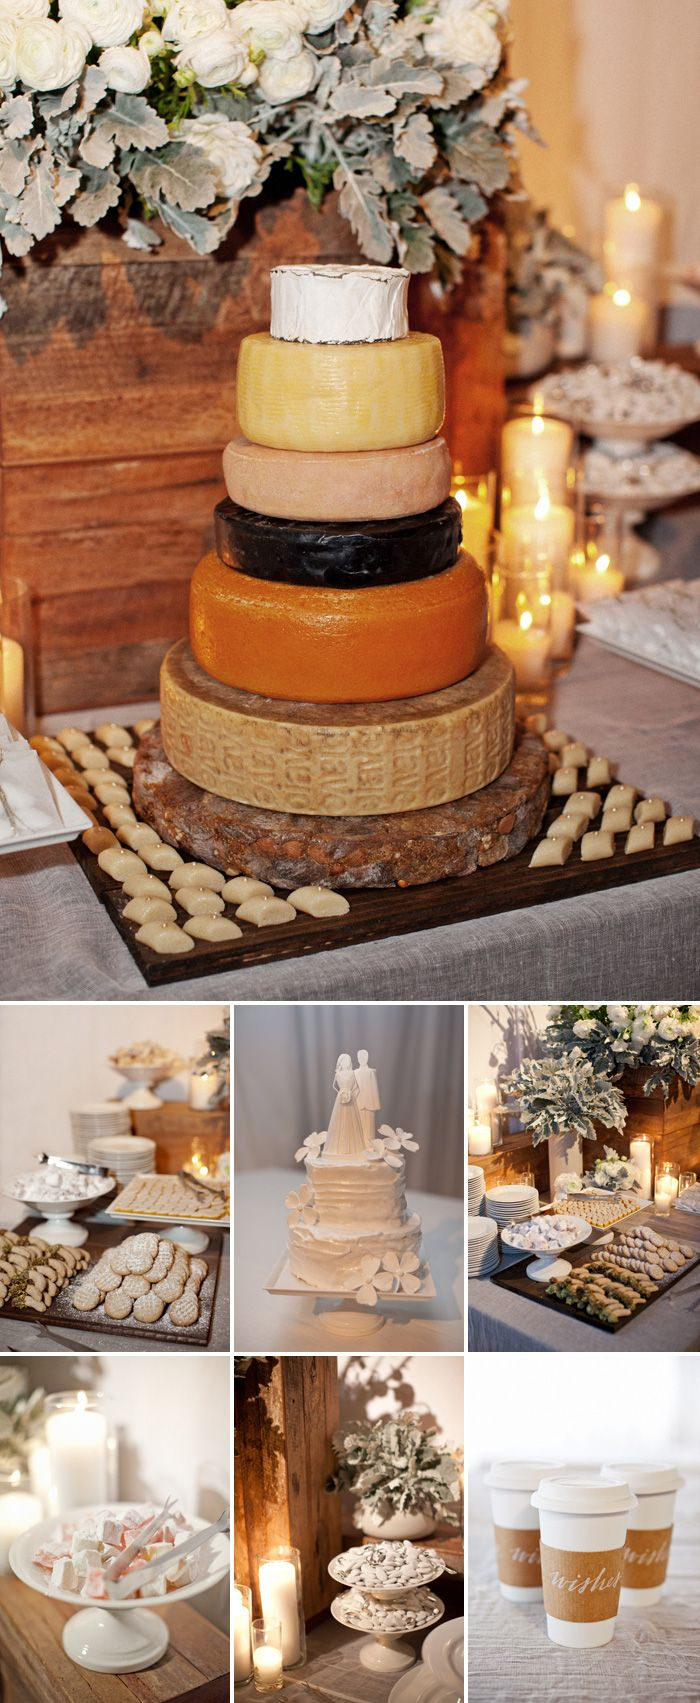 5 tiered cheese wedding cake 31 best images about cheese wheel wedding cake on 10456